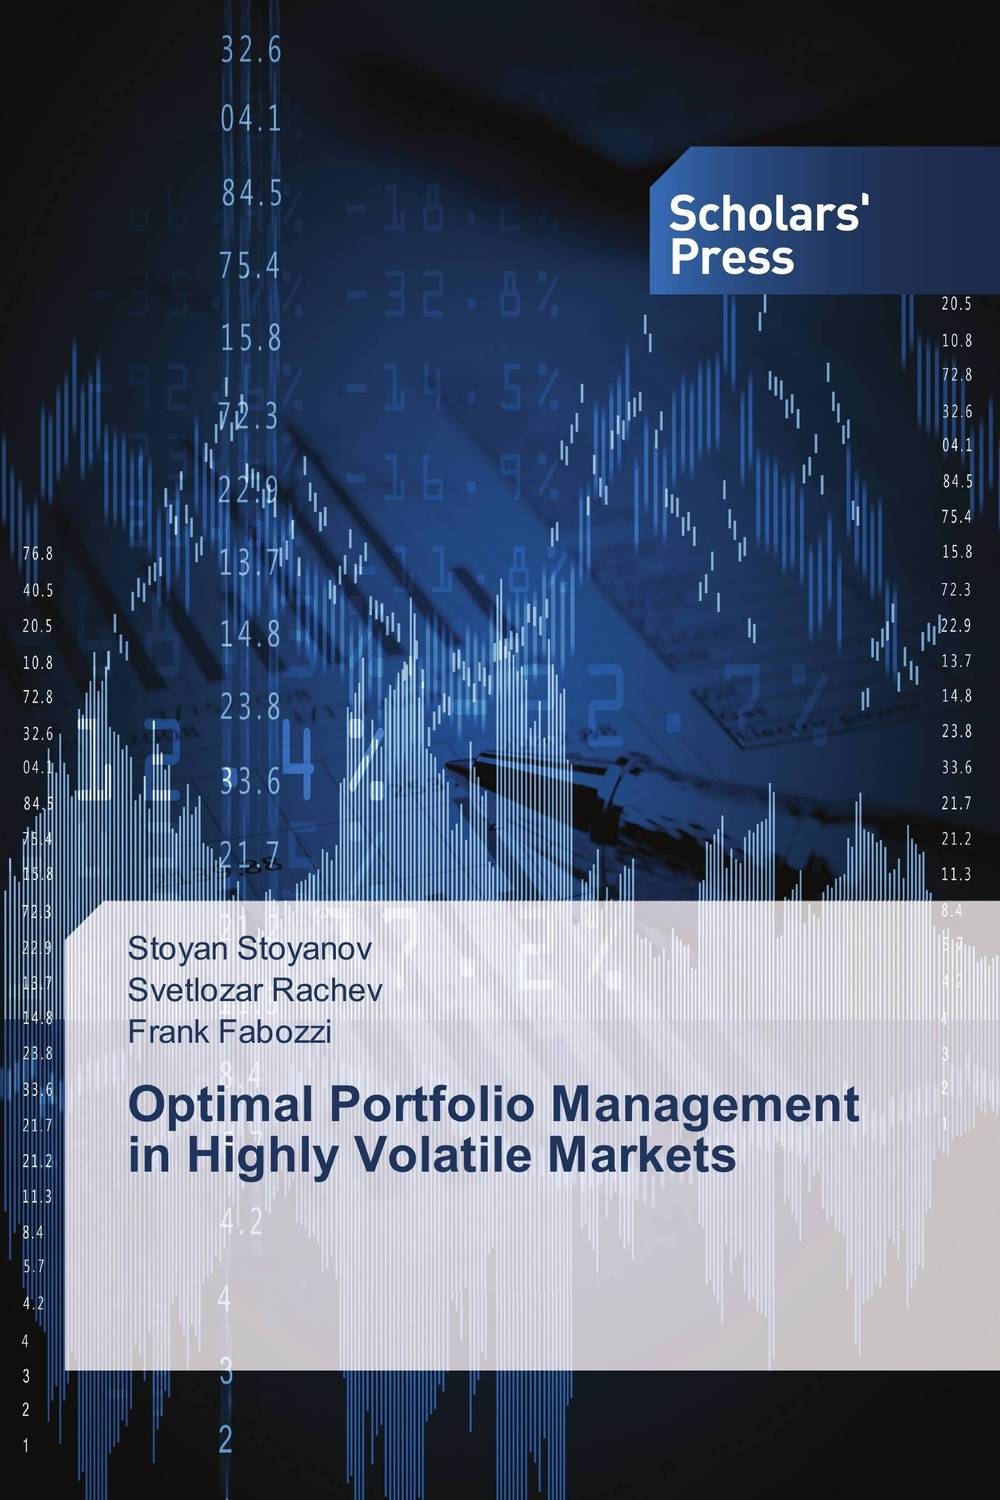 Optimal Portfolio Management in Highly Volatile Markets charles tapiero s risk finance and asset pricing value measurements and markets